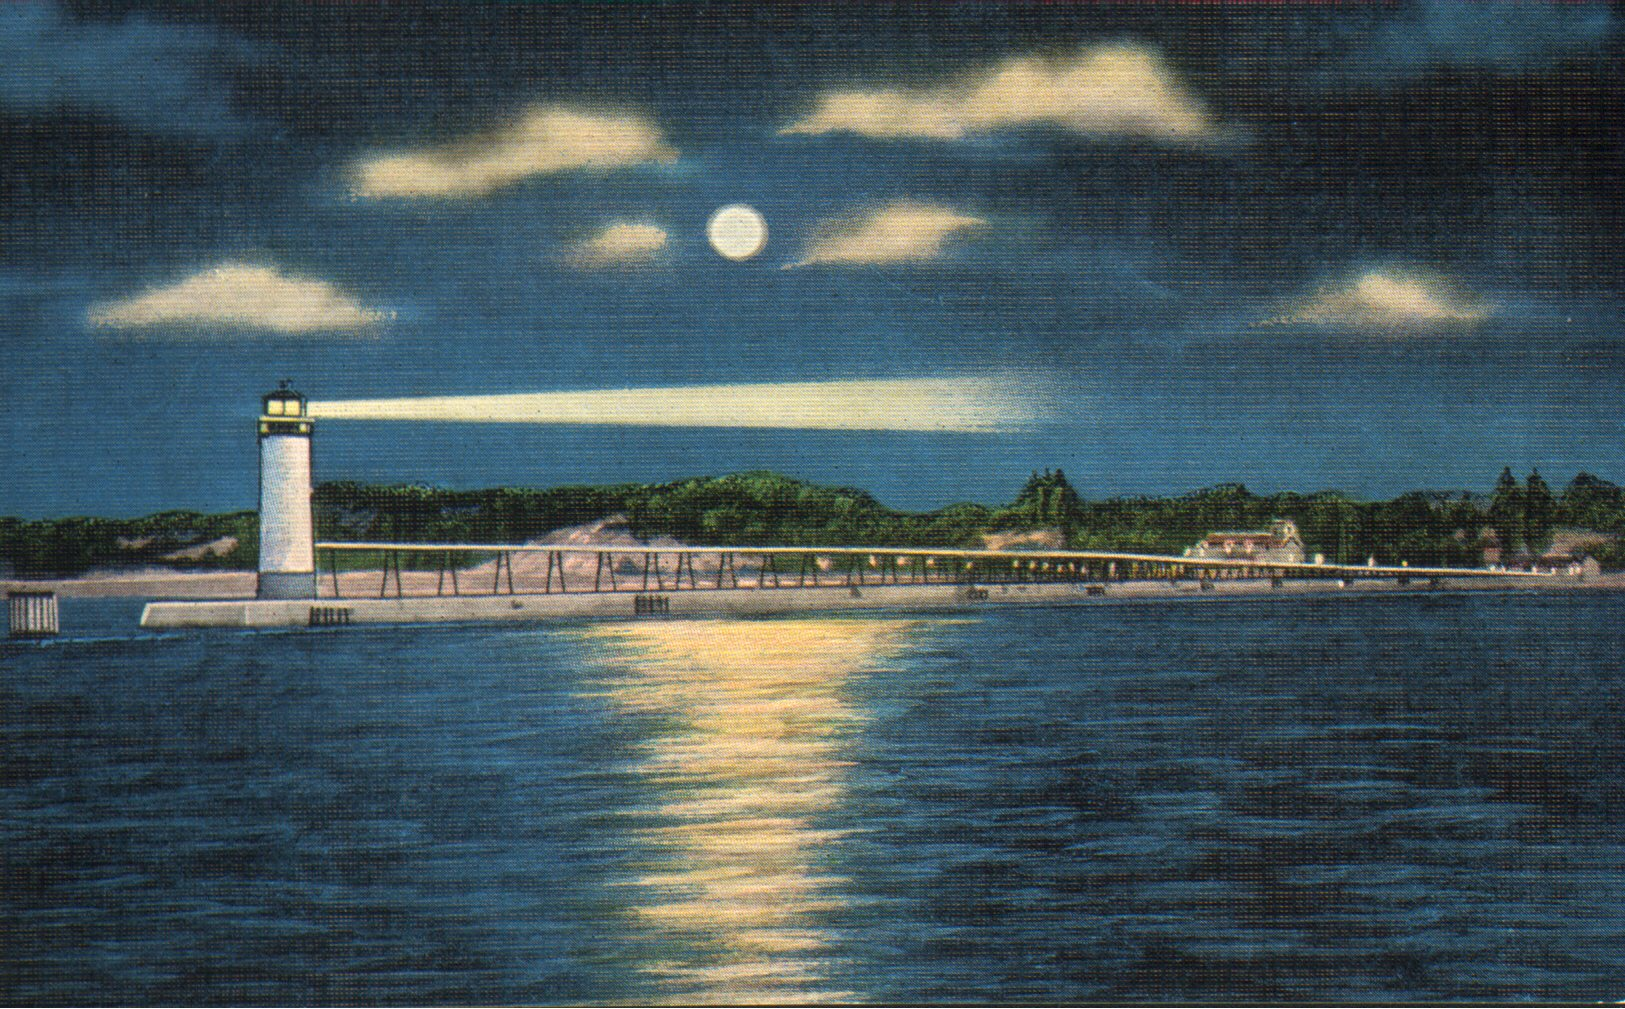 Harbor mouth postcard that depicts a night scene with a full moon shining over the Fifth Avenue Lighthouse and catwalk